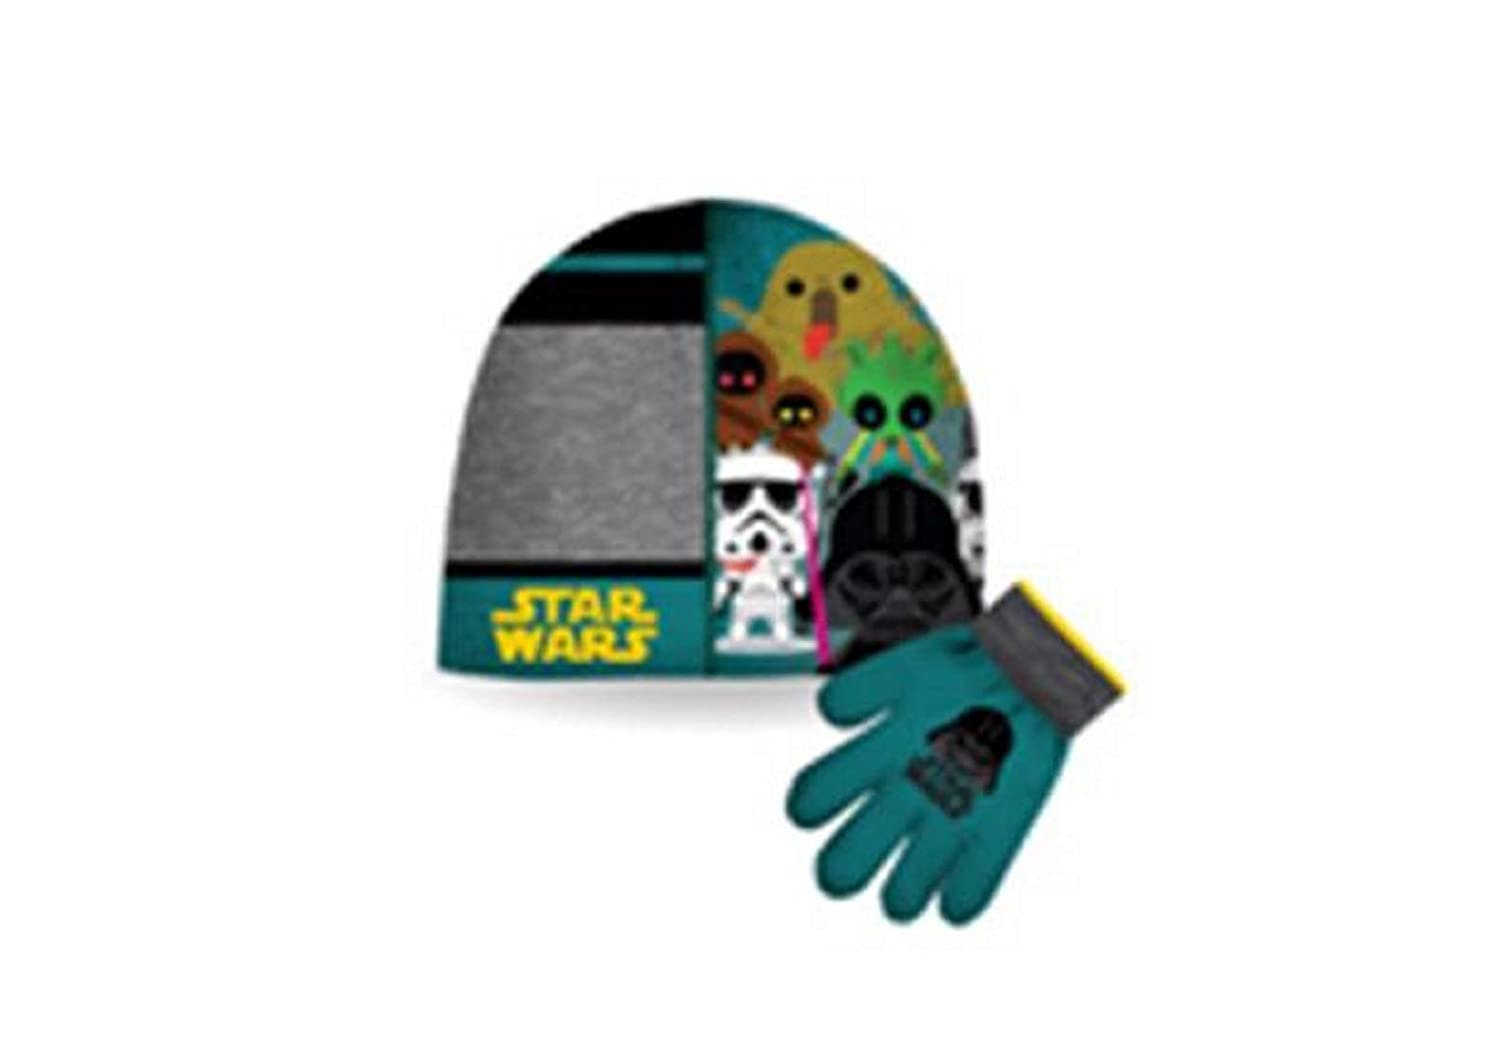 Star Wars Boy's Darth Vader Hat & Gloves Giftset Size 4-6X Gertex